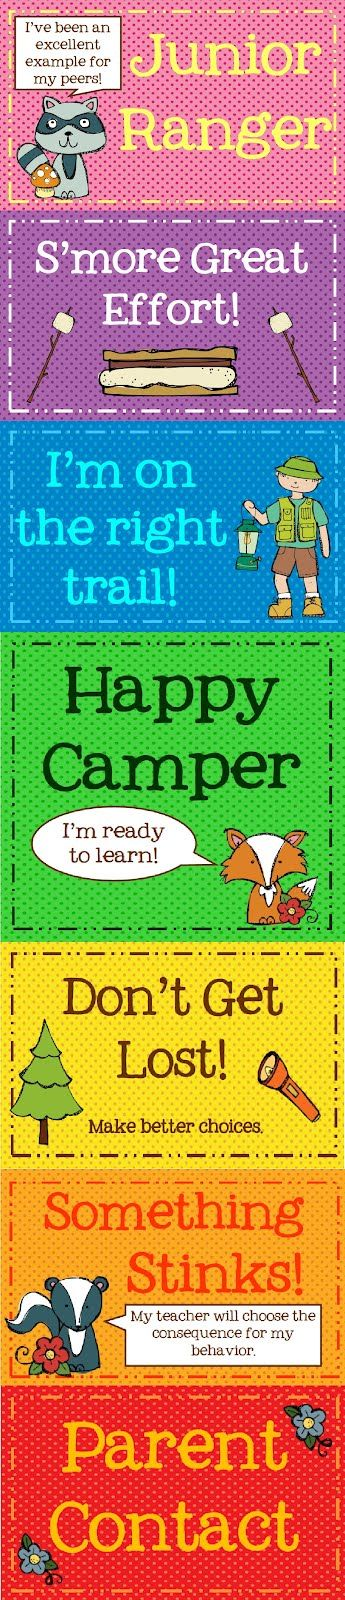 Camping Theme: Classroom Management Clip Chart Freebie: Camps Theme Classroom, Classroom Theme, Camps Classroom, Management Clip, Behavior Charts, Camping Theme, Clip Charts, Charts Freebies, Classroom Management